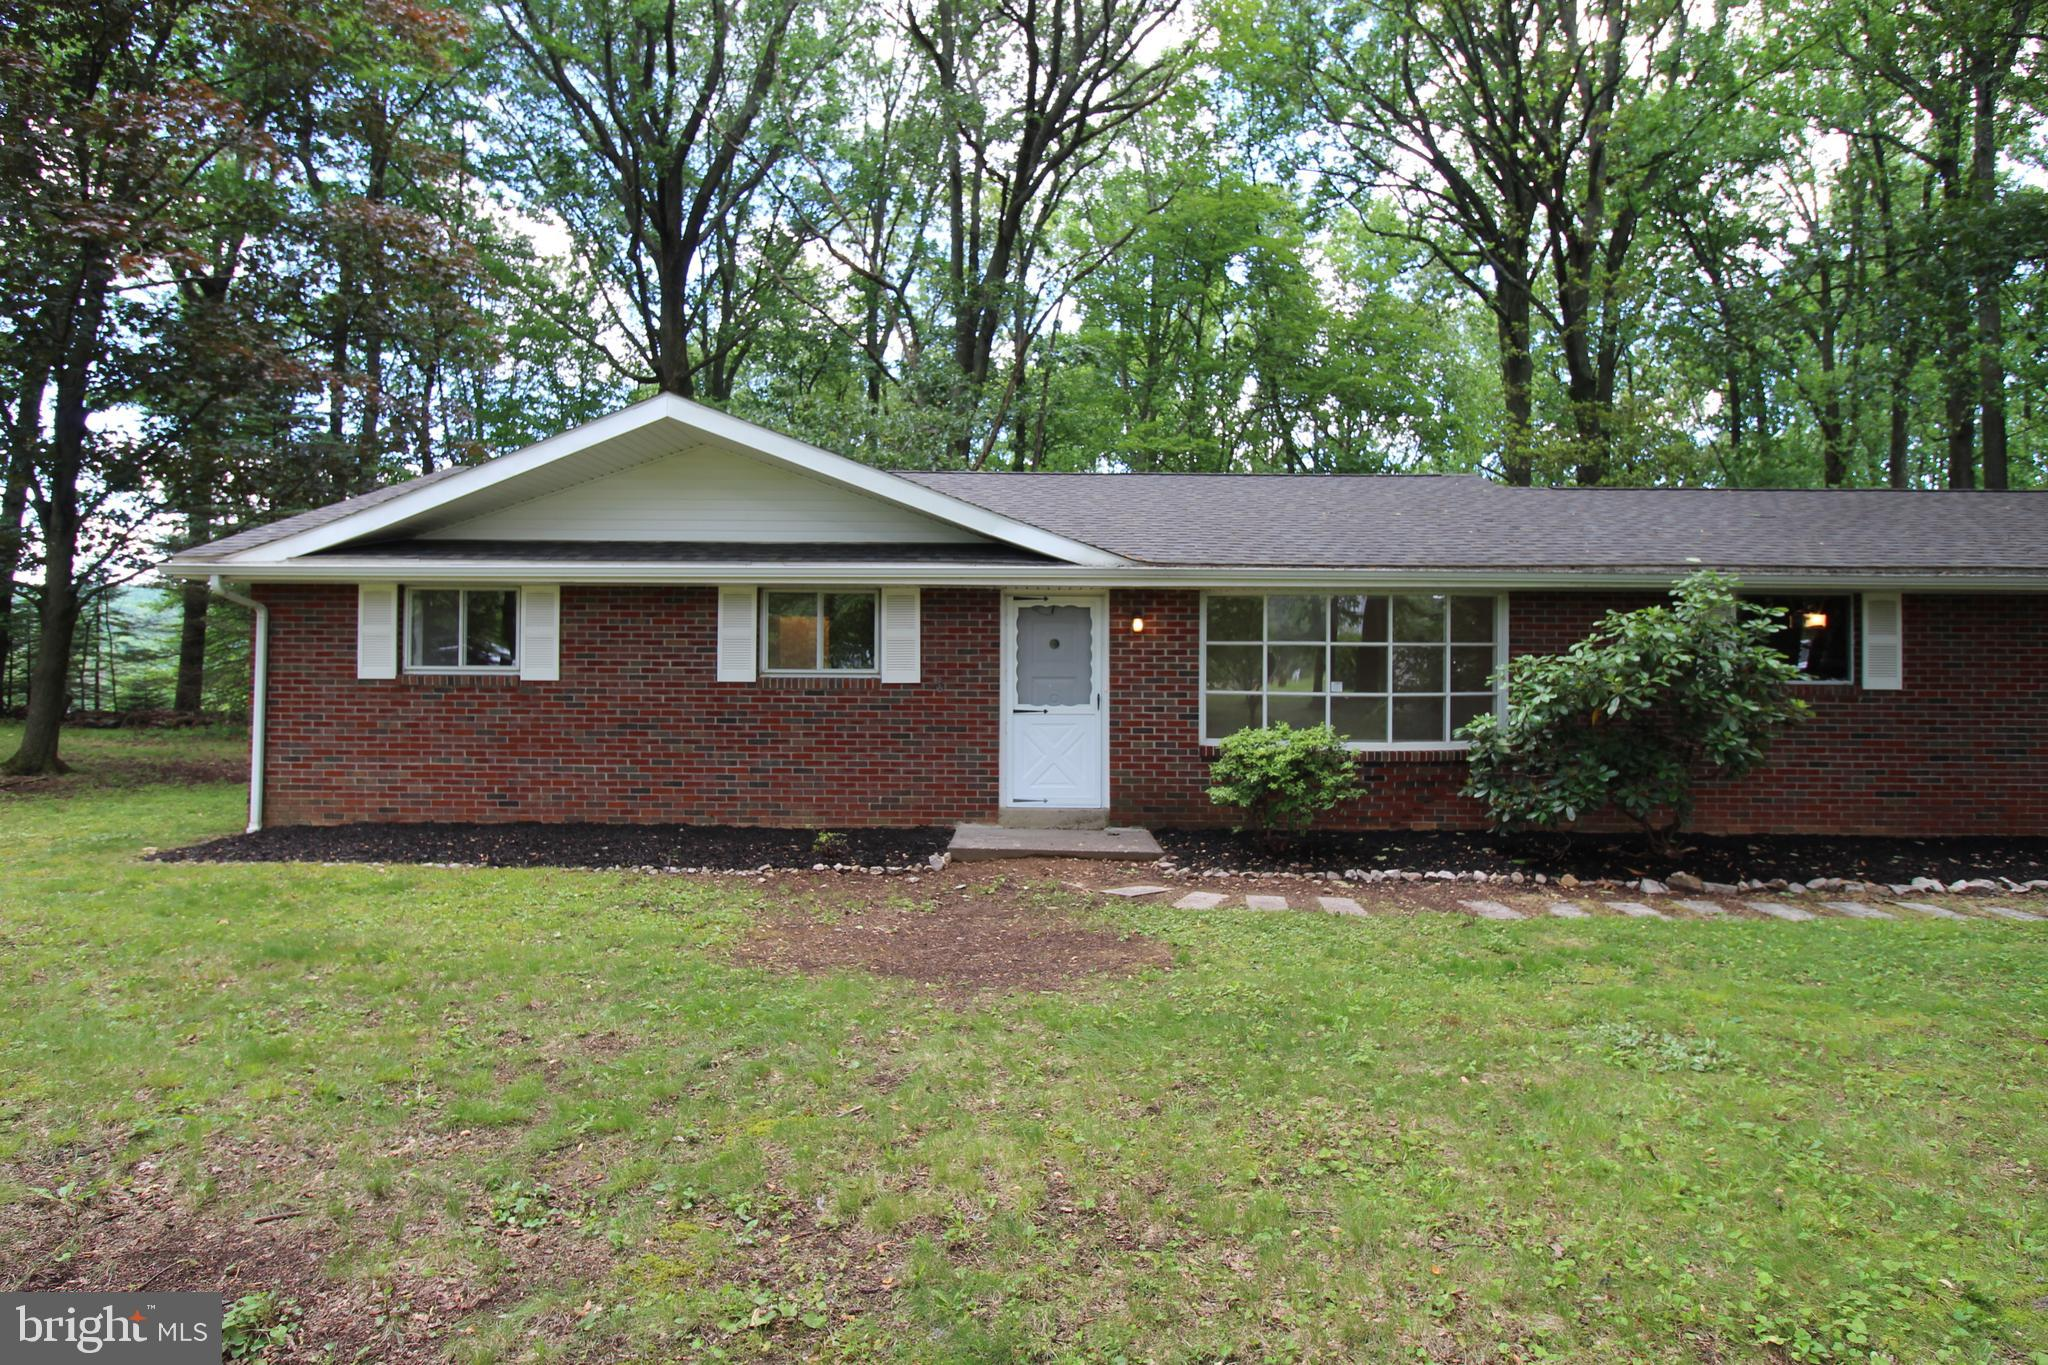 368 FORGEDALE ROAD, BECHTELSVILLE, PA 19505